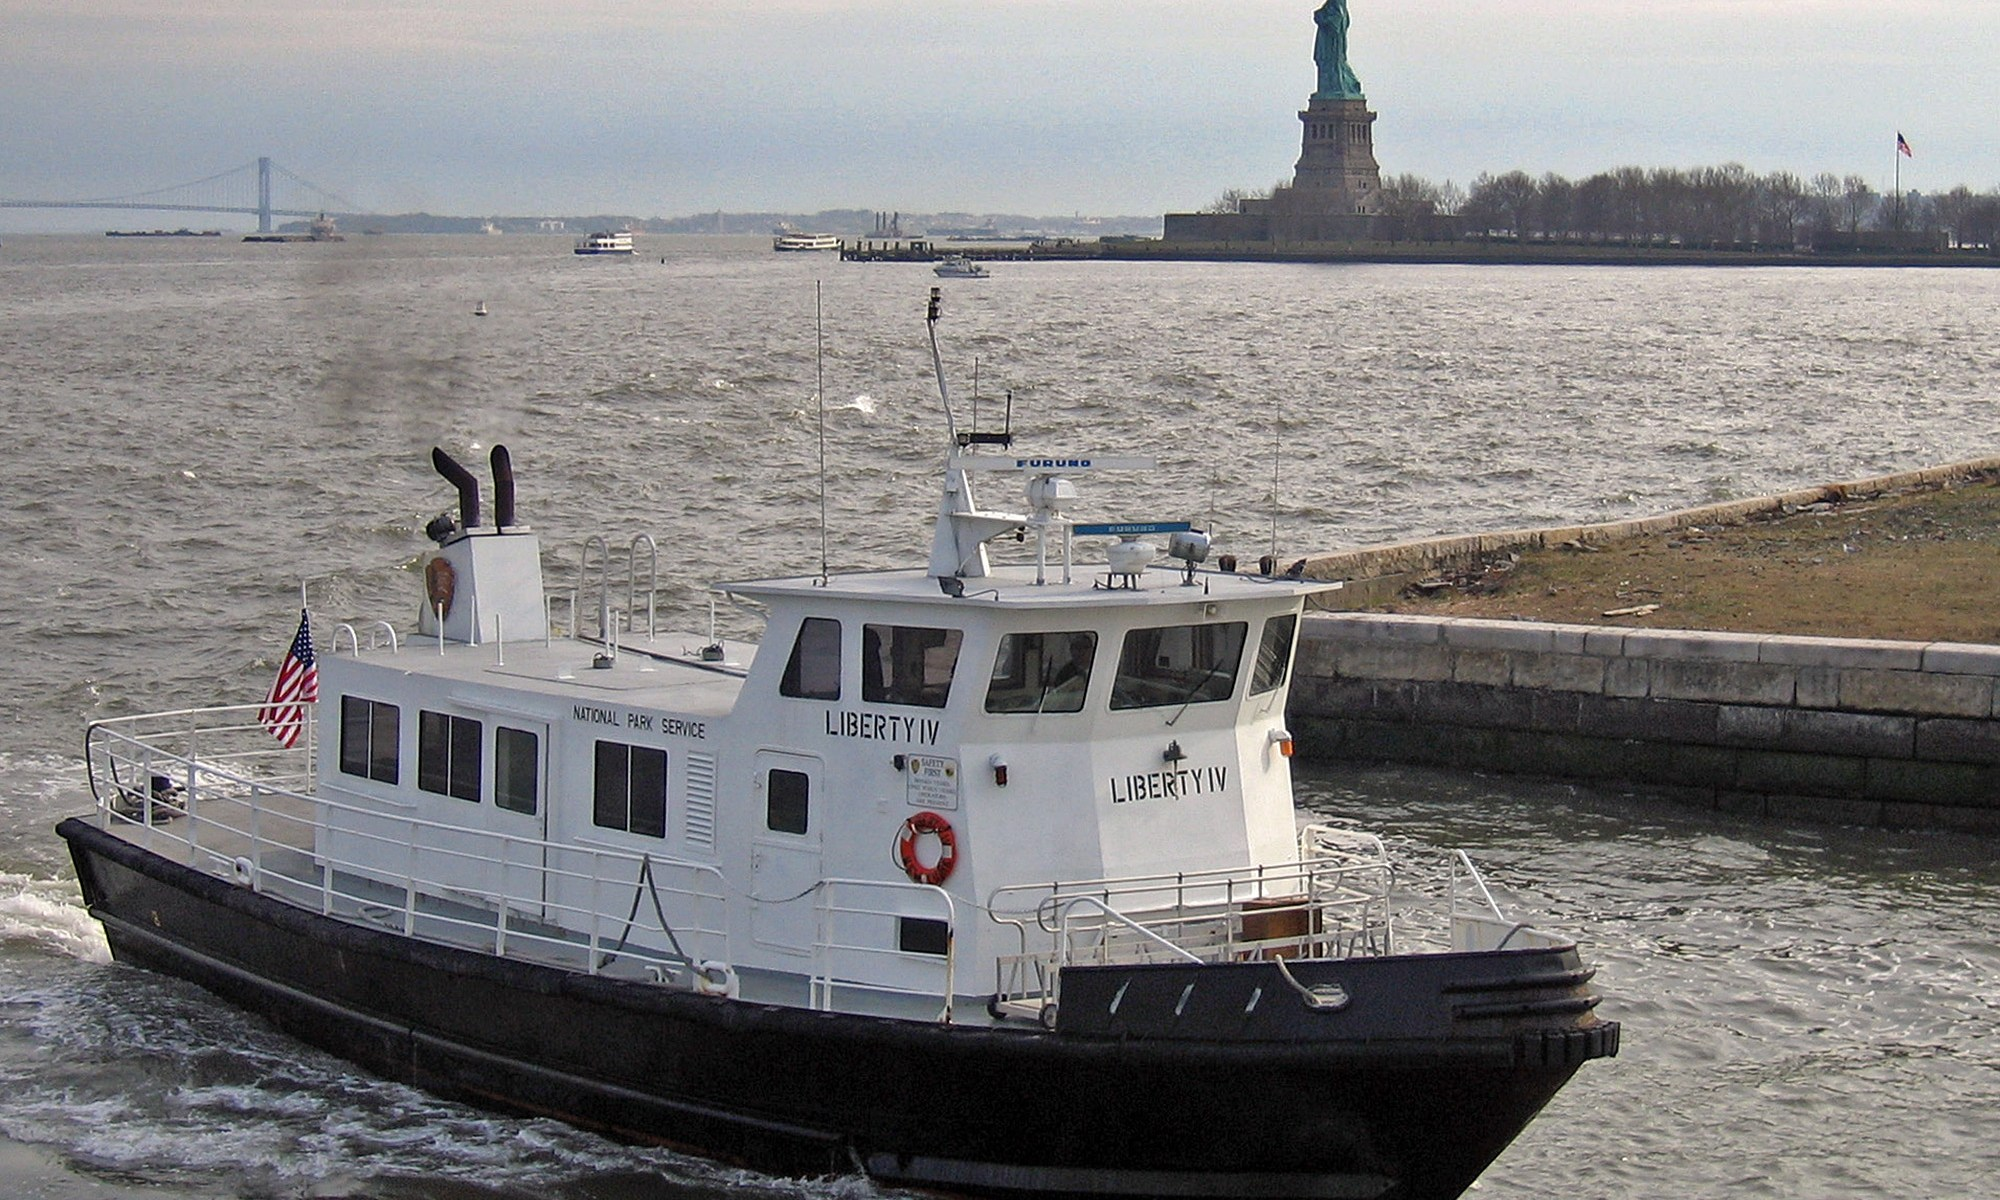 Liberty IV Ferry from Statue of Liberty